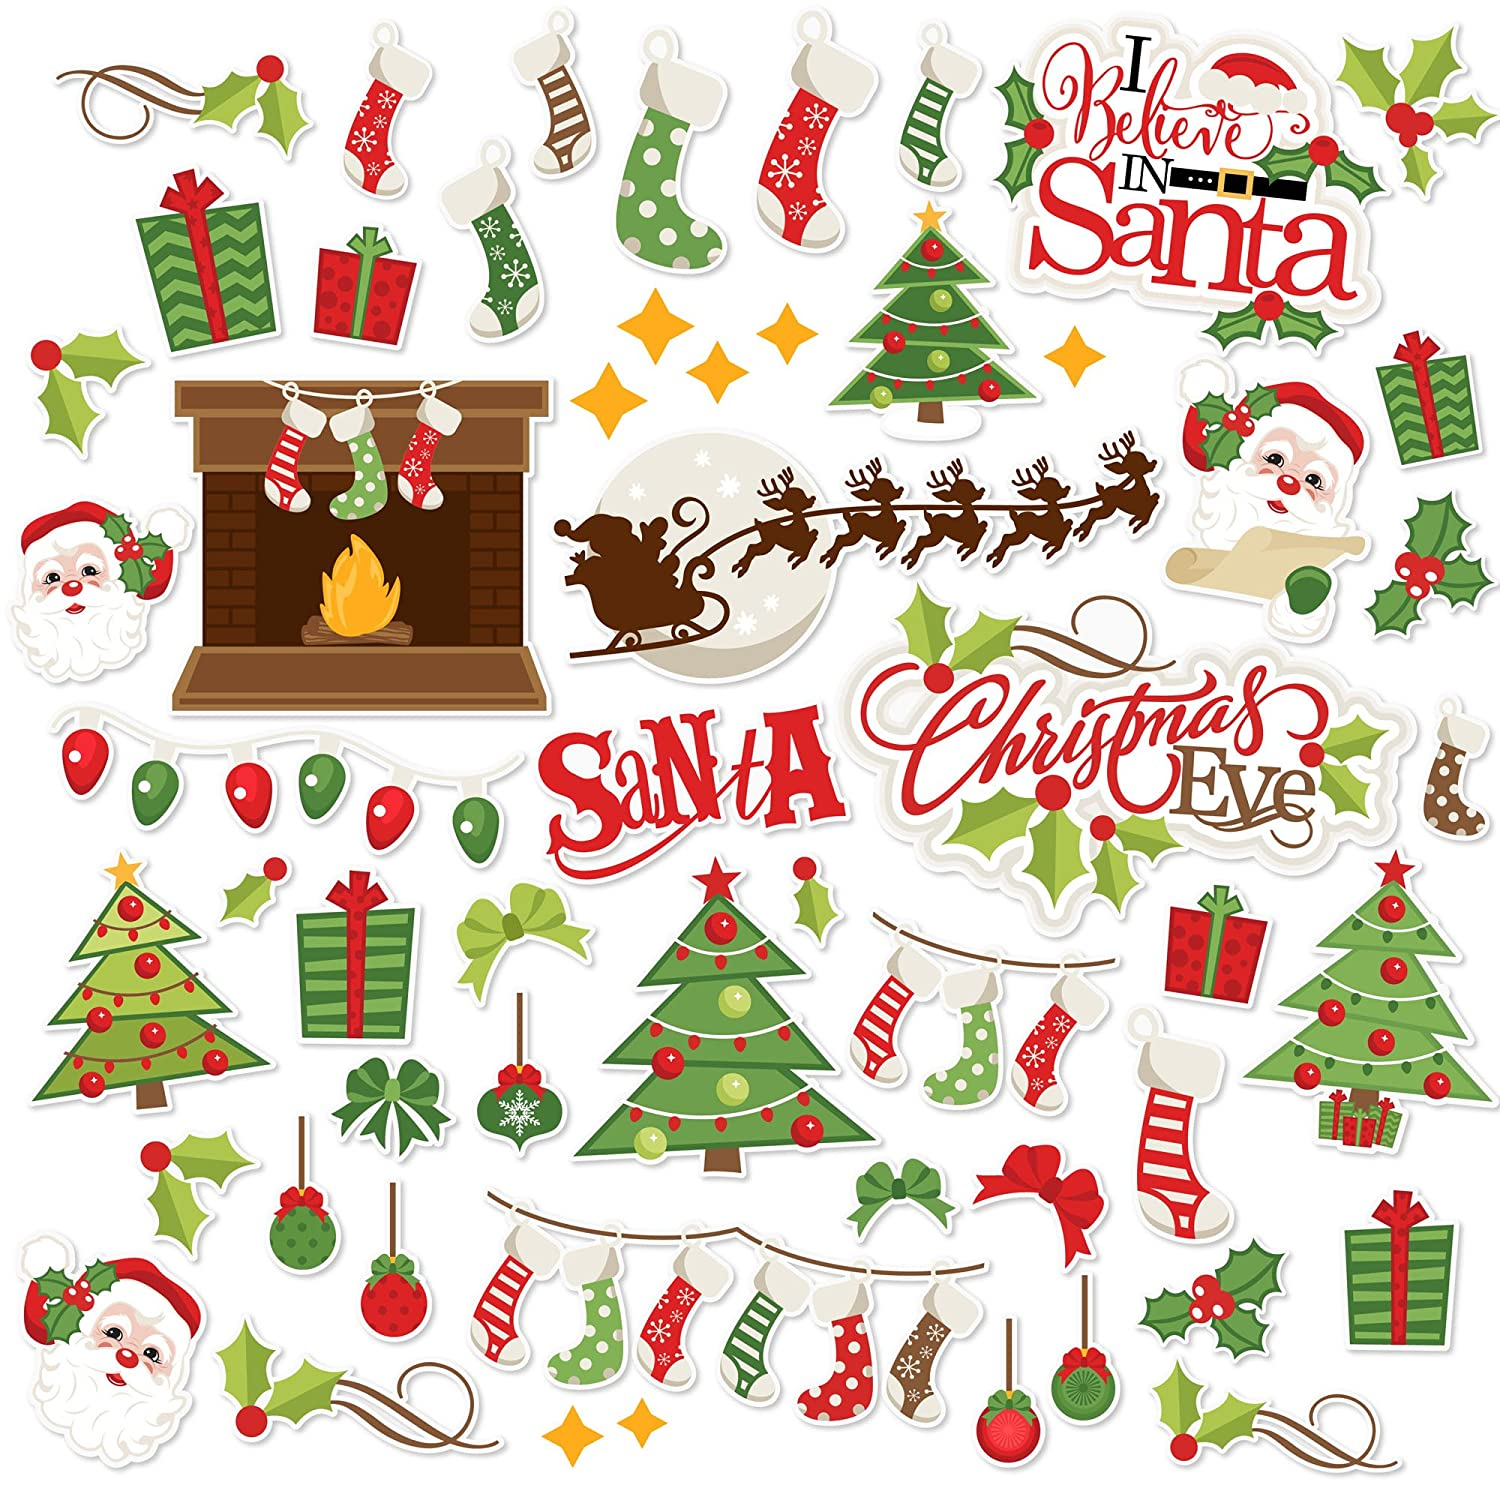 Paper Die Cuts - Christmas Eve - Over 60 Cardstock Scrapbook Die Cuts - by Miss Kate Cuttables